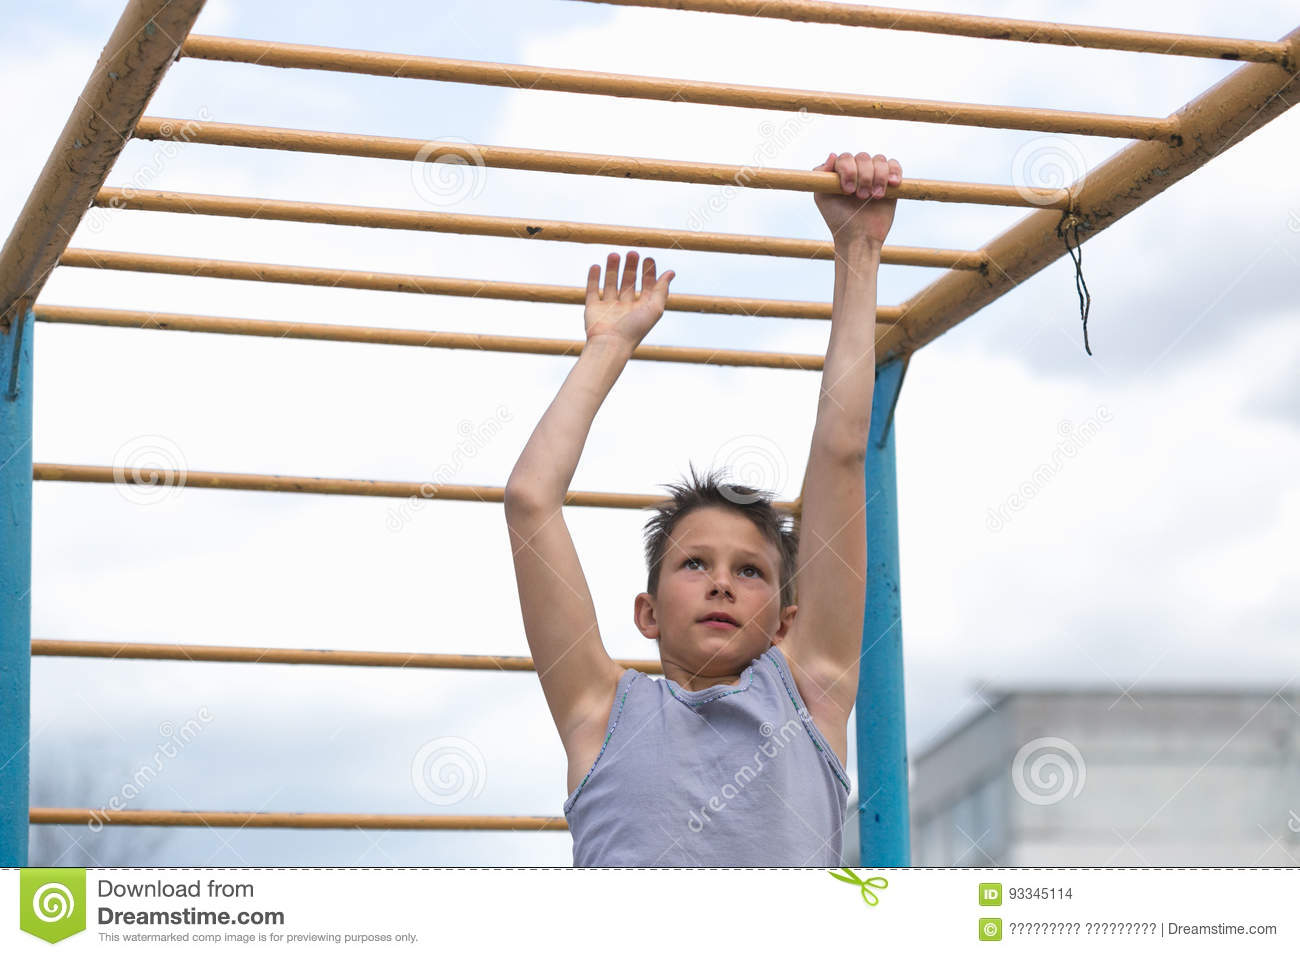 A teenager in a T-shirt is engaged in gymnastics on a horizontal bar